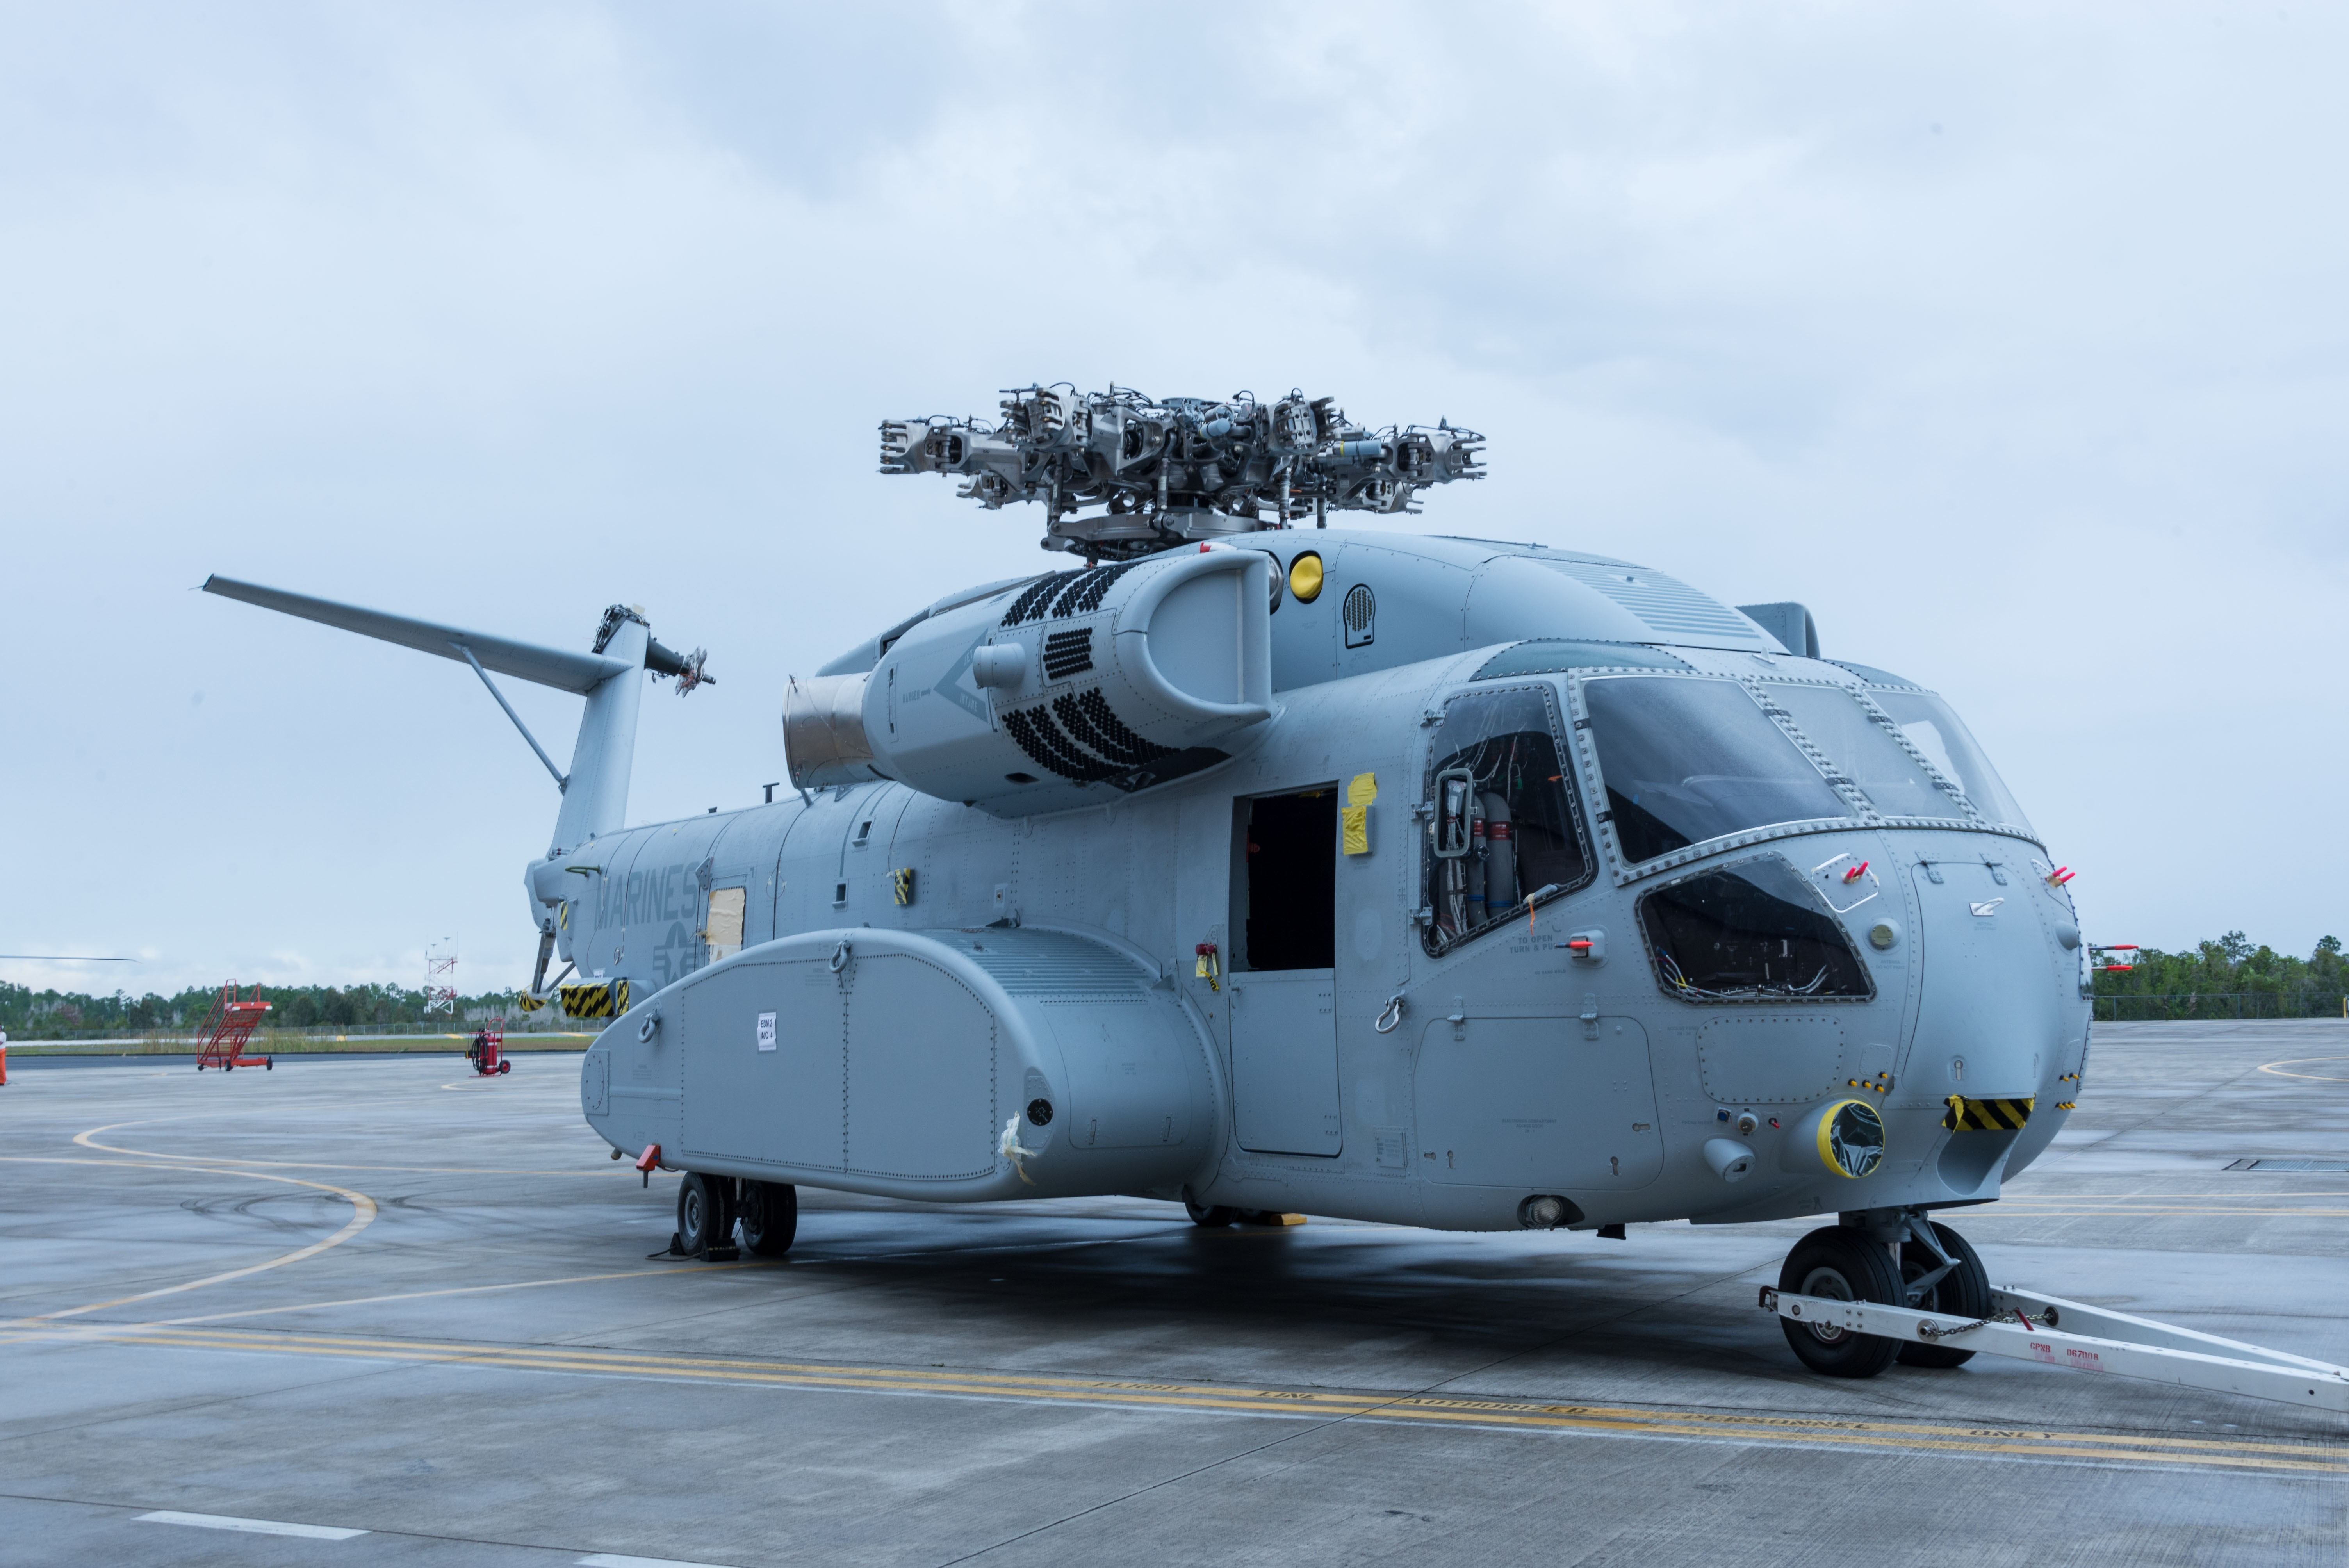 sikorsky ch 53k heavy lift helicopter with Sikorsky Ch 53k King Stallion Fighter Helicopter Fighter U 8019 on Ch 53k King Stallion together with Hlr furthermore MH 53 Pave Low furthermore Ch 53k Operational Test Helicopter Contract Issued also 699353.